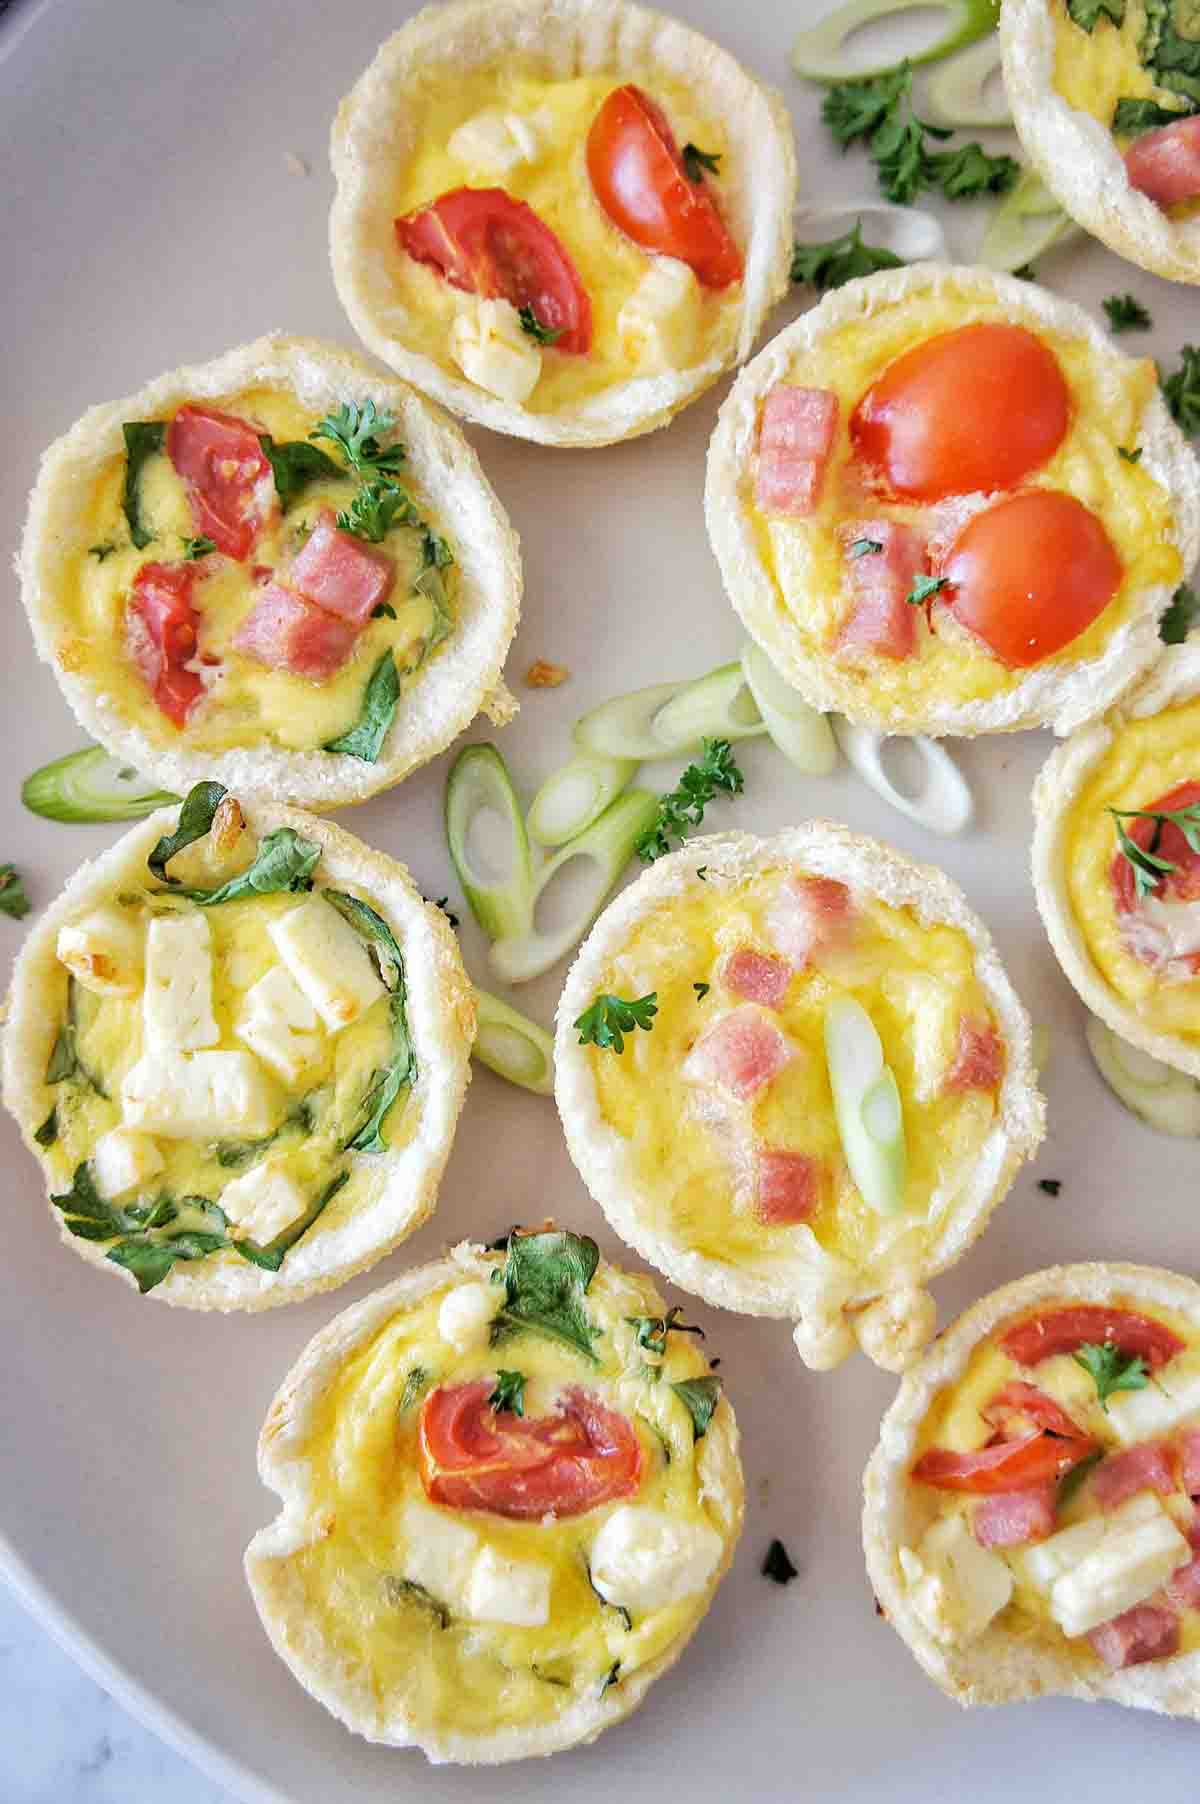 Mini Quiches on a pale cream plate